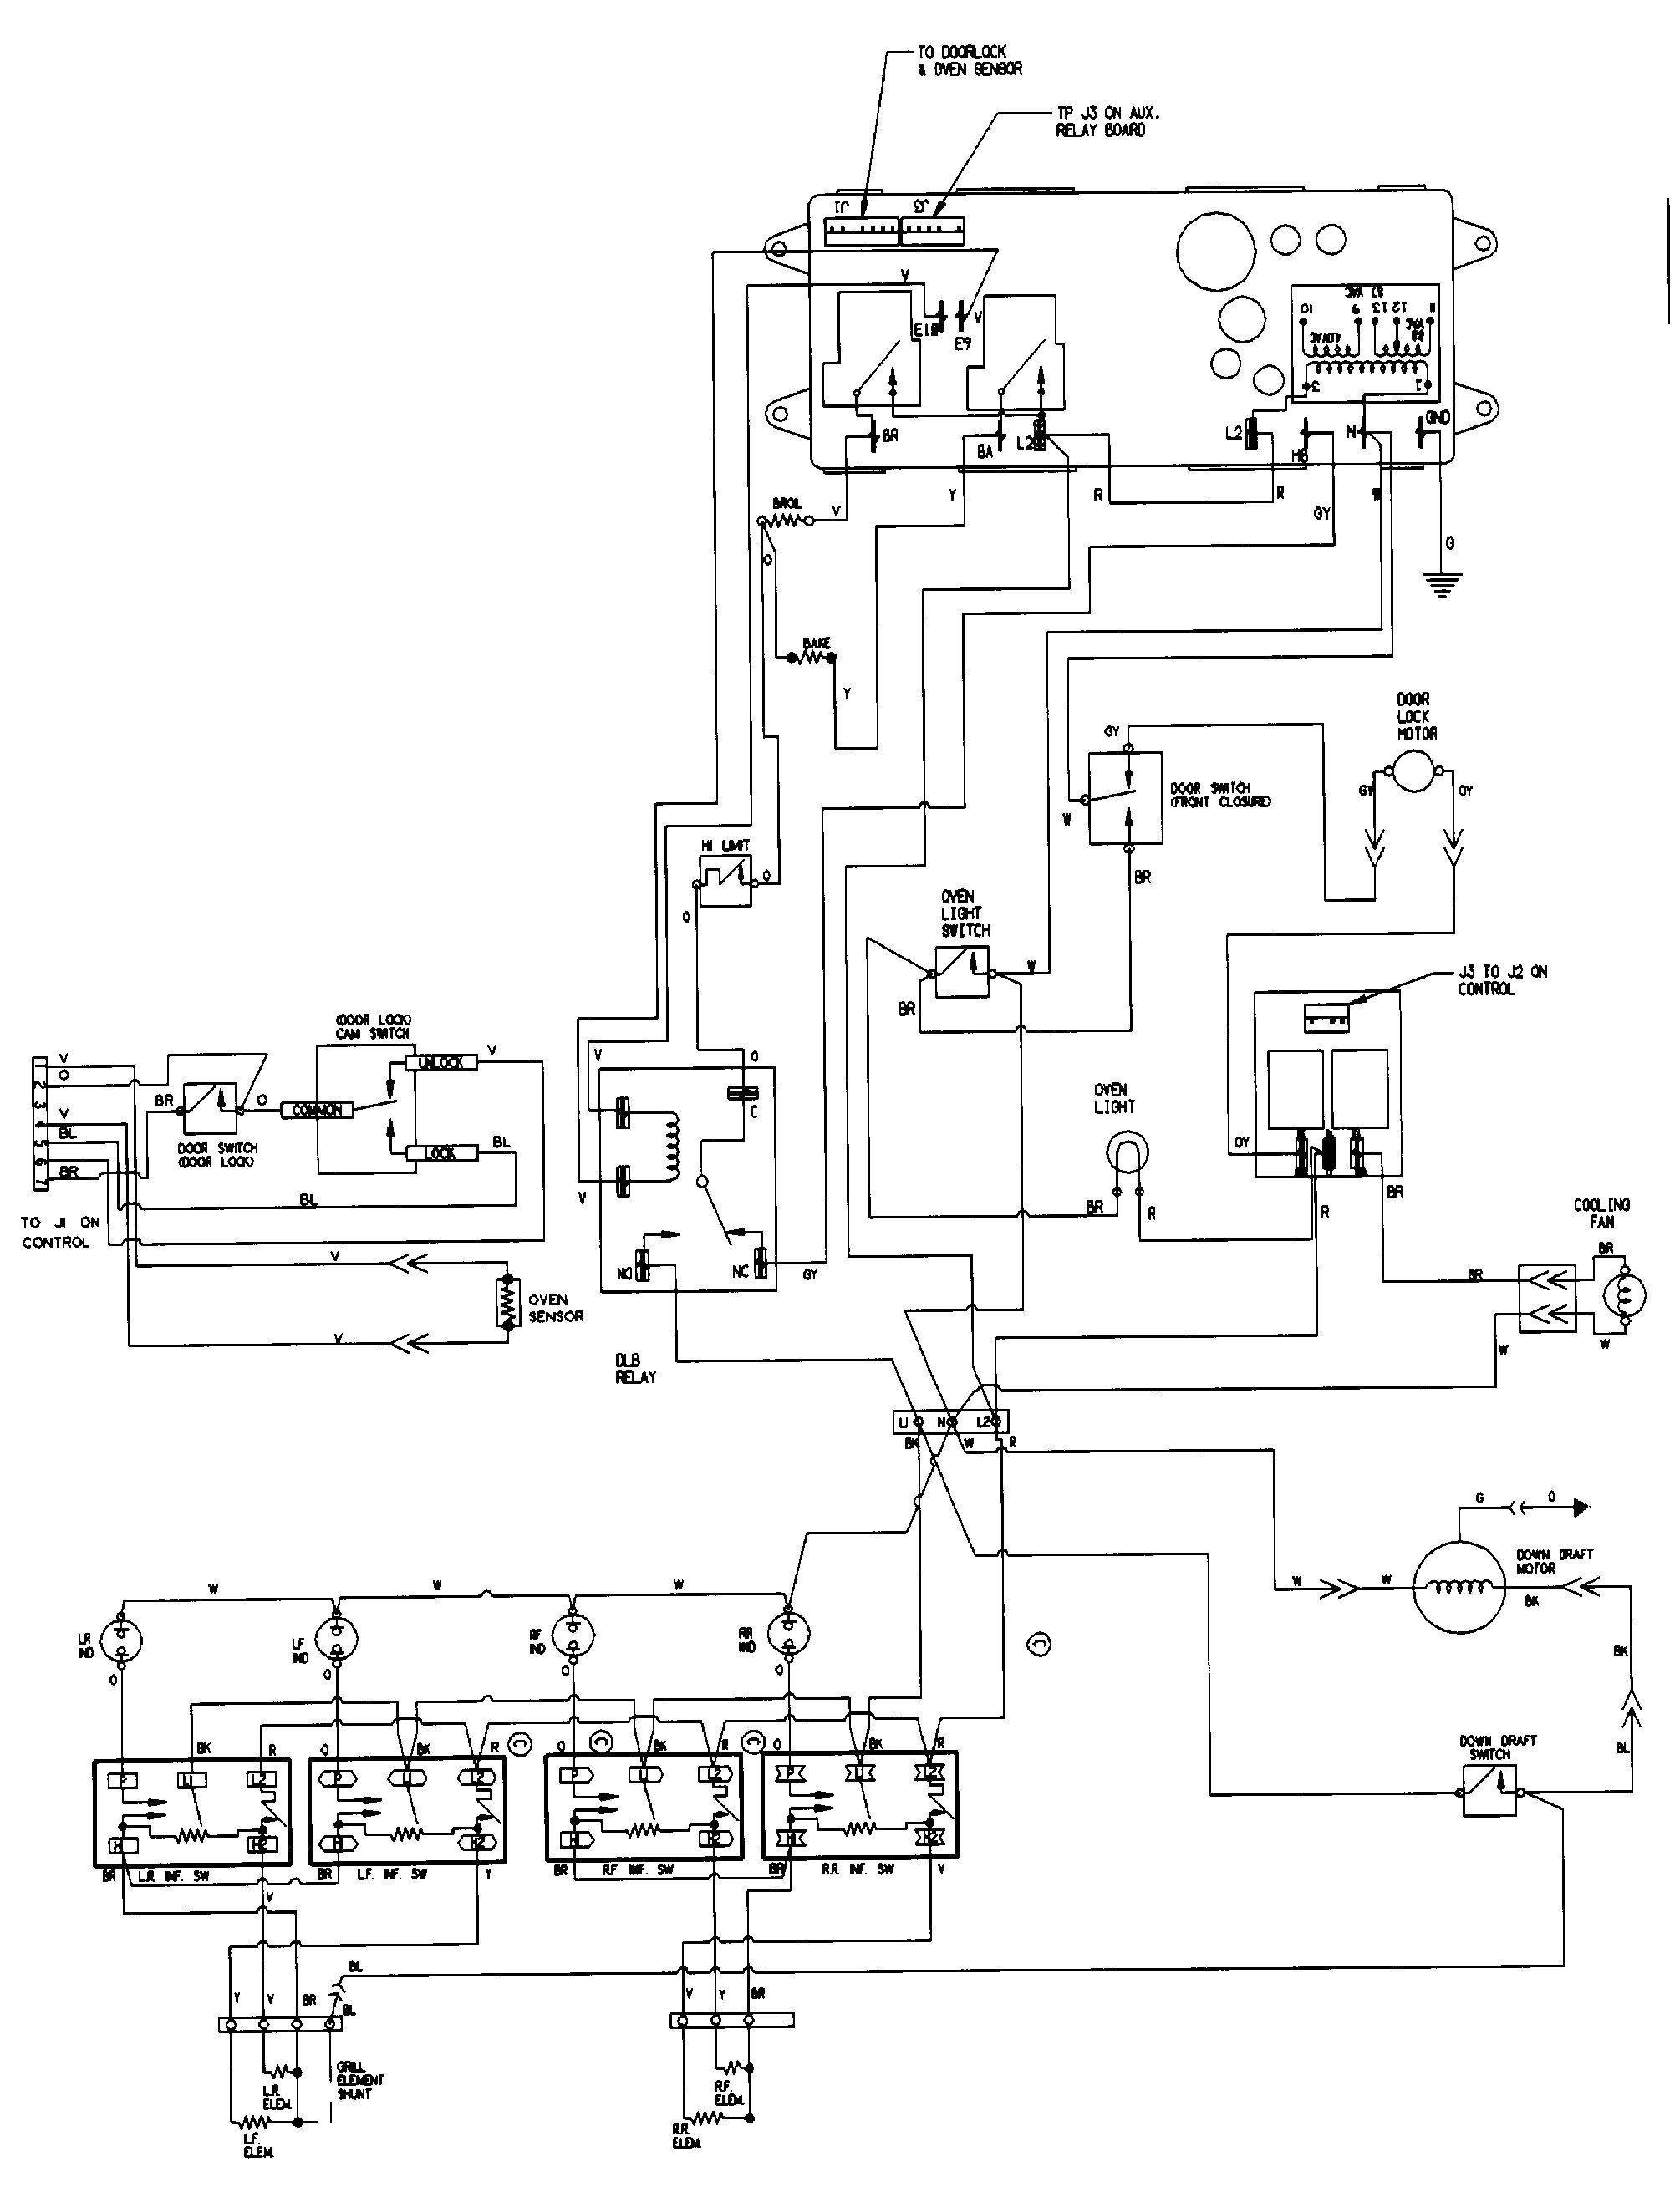 Rule Bilge Switch Wiring Diagram | Manual E-Books - Rule Automatic Bilge Pump Wiring Diagram